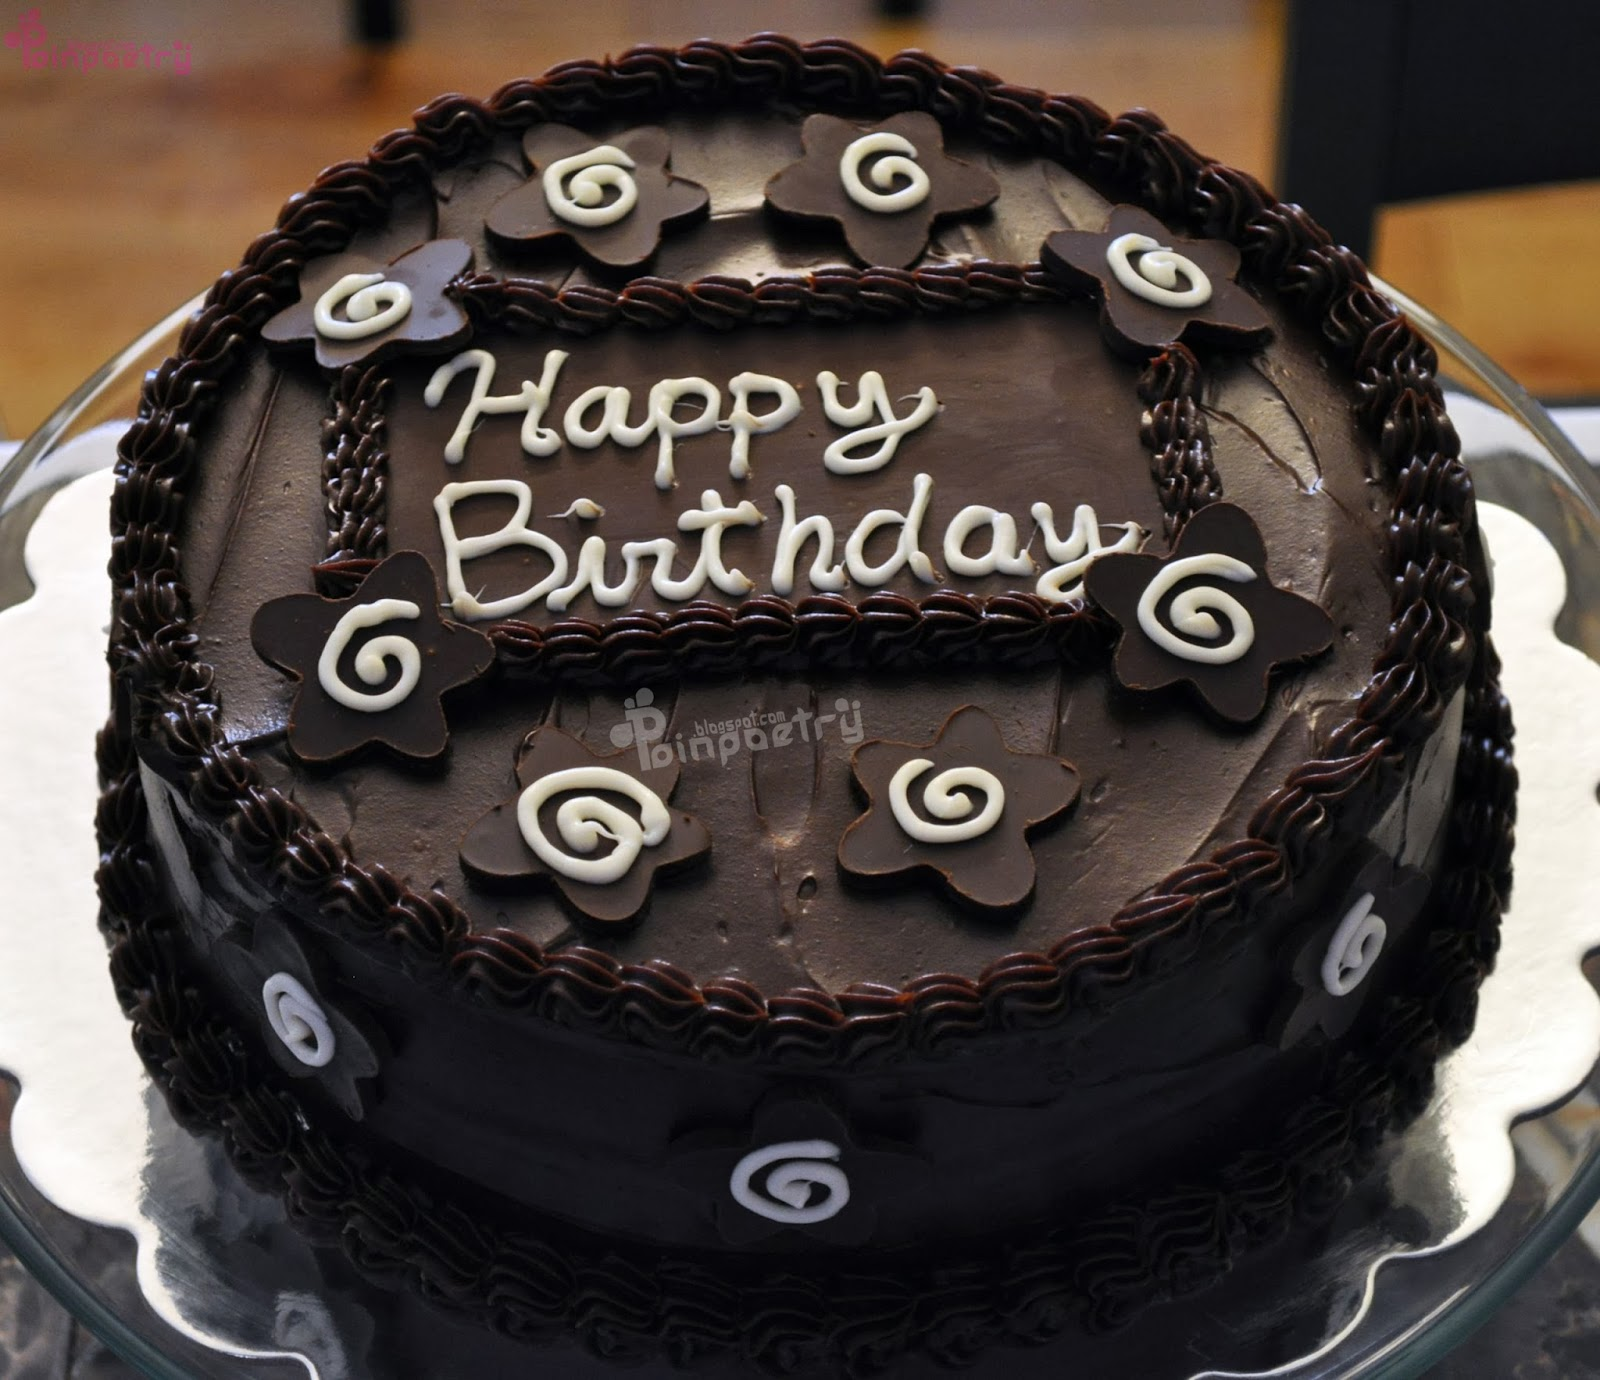 Happy-Birthday-Special-Cake-Image-Photo-Wallpaper-Wide